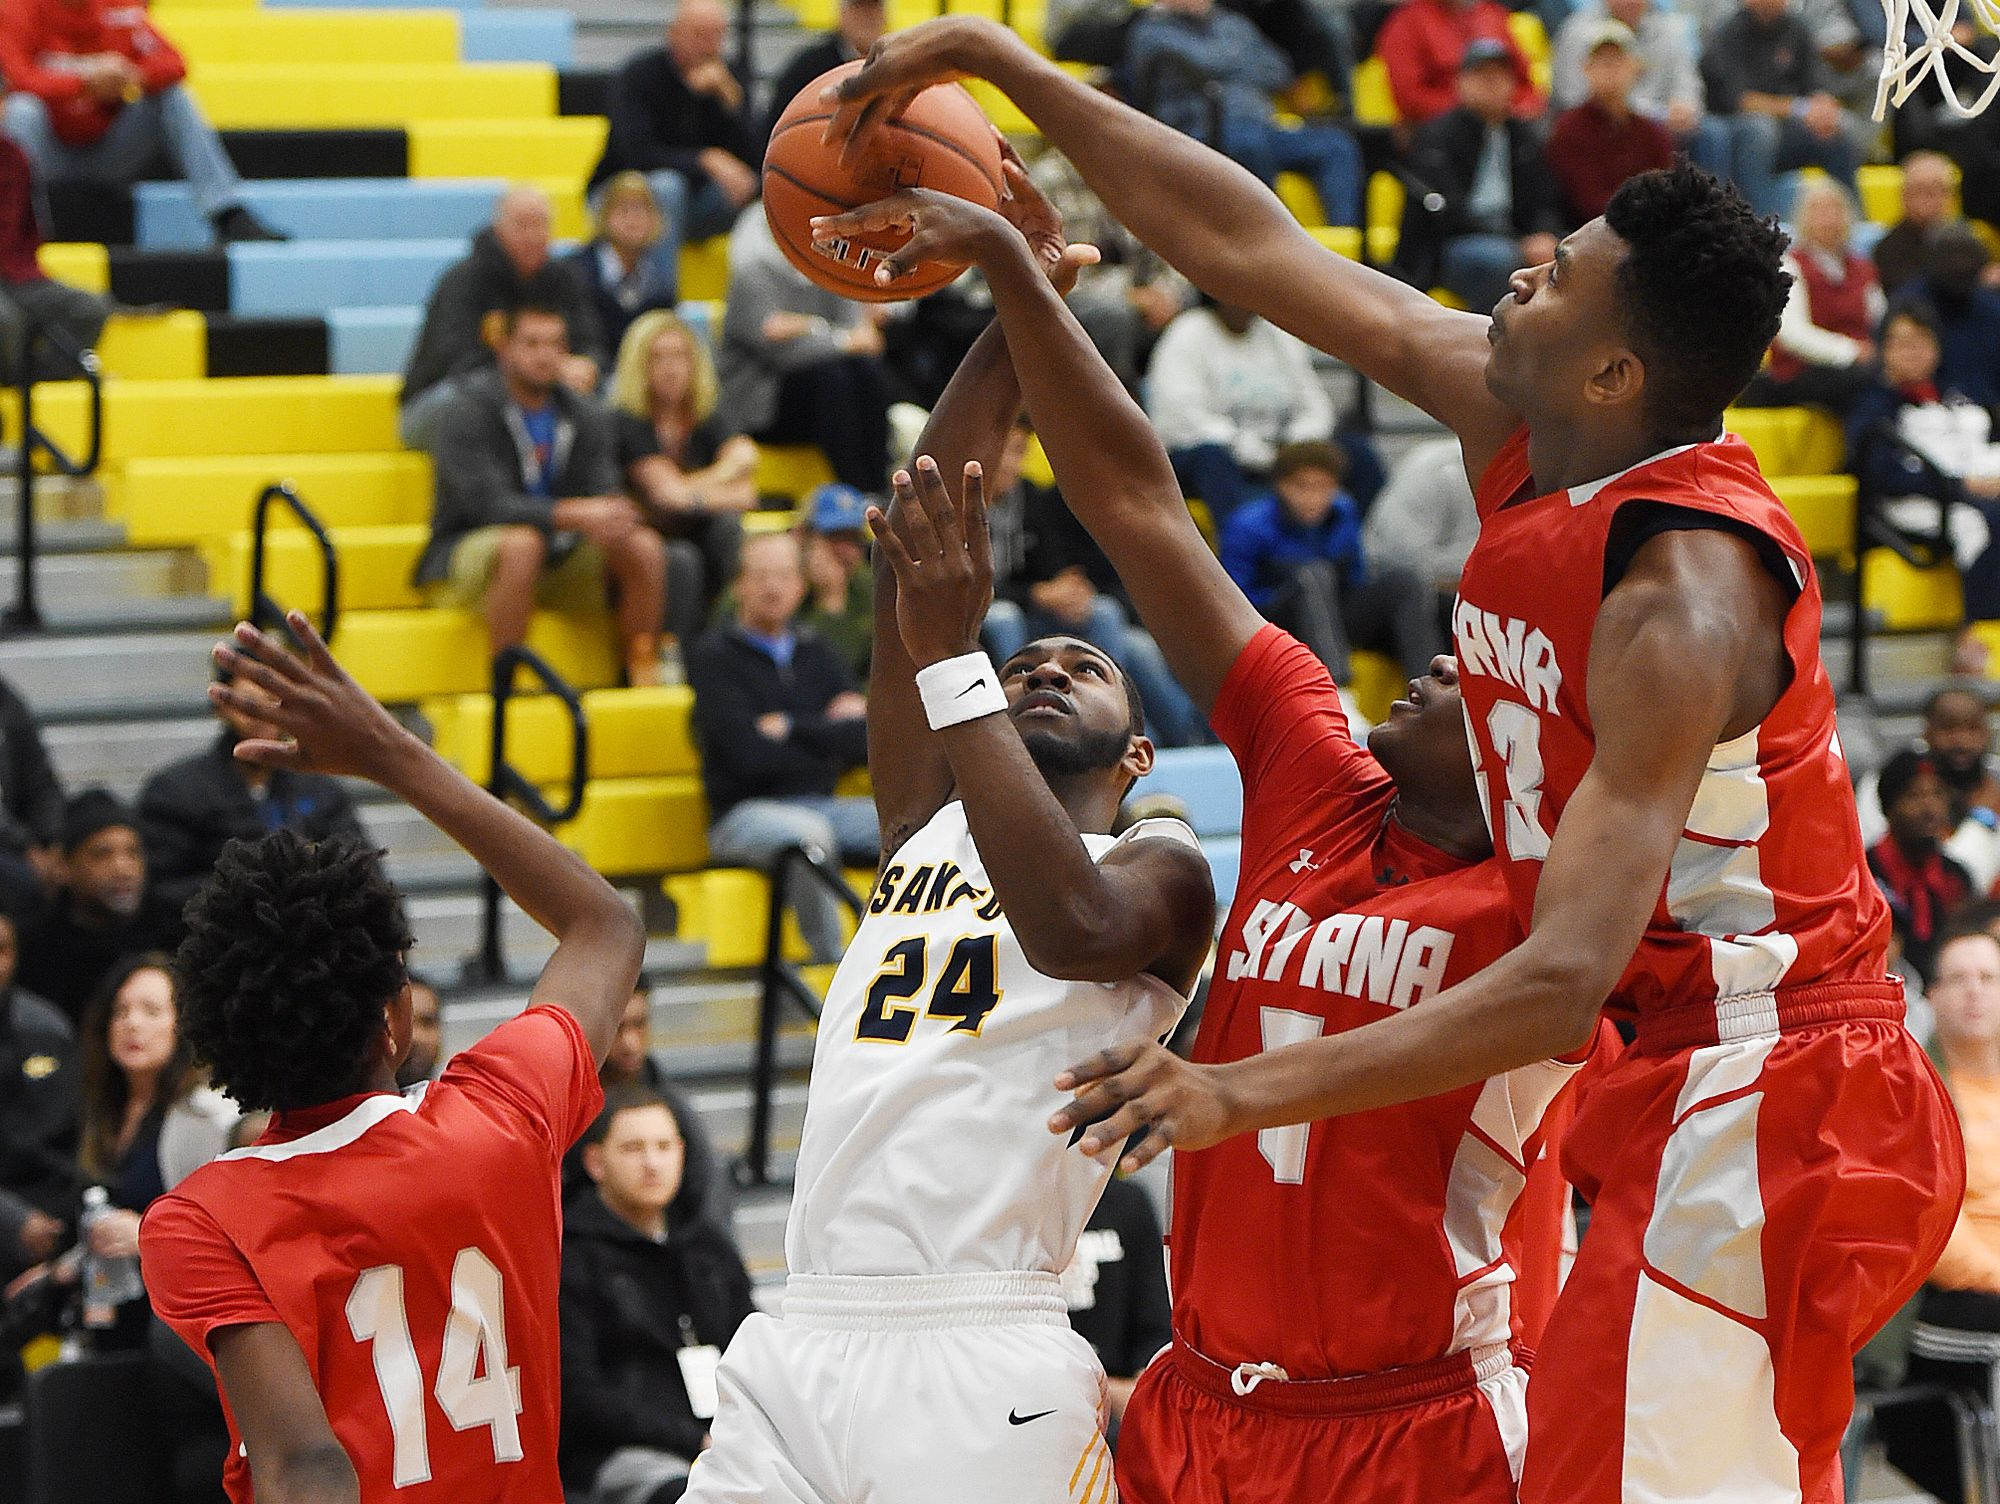 Sanford's Marcus McCollum (24) gets teamed up on by Smyrna players during Thursday action at the Slam Dunk to the Beach, held at Cape Henlopen.